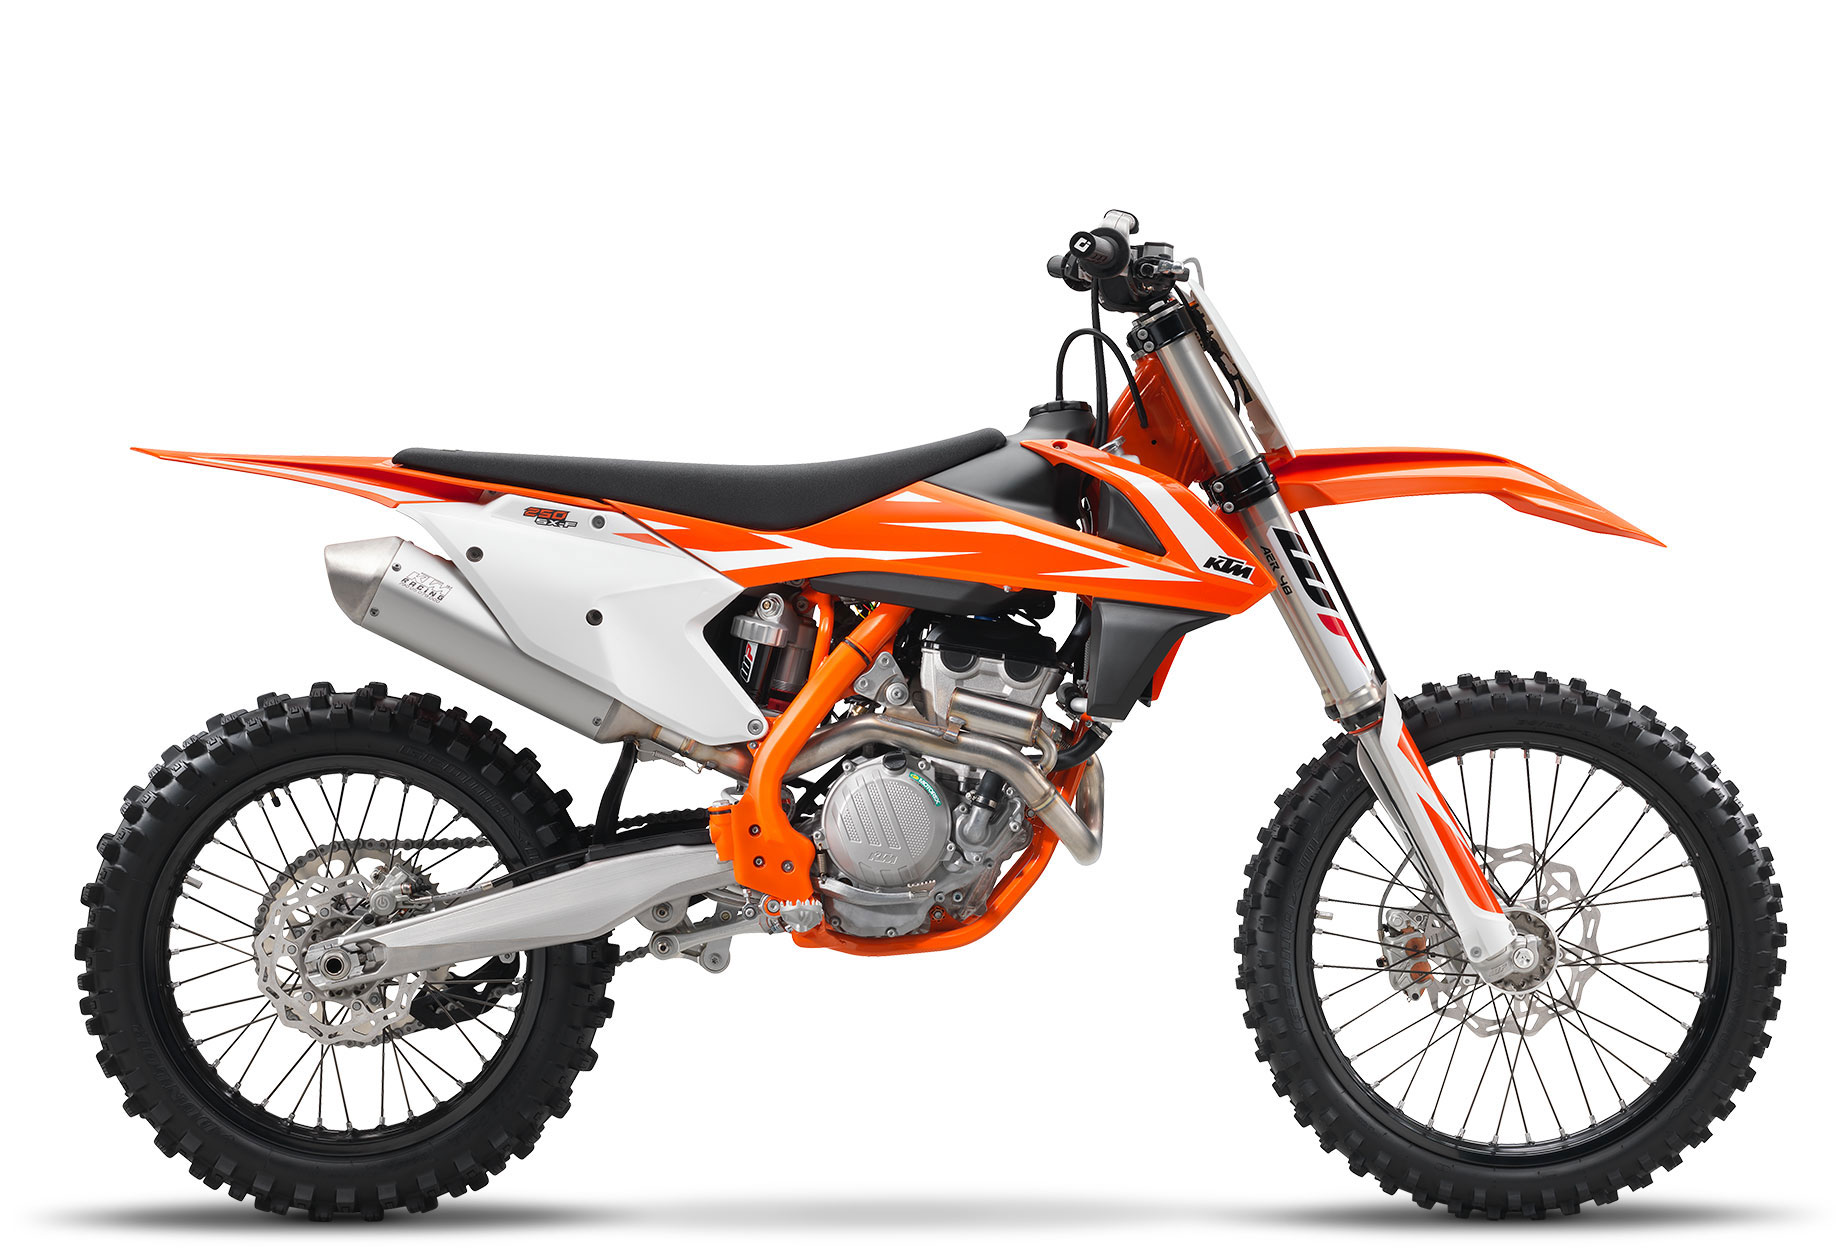 2018 ktm 250 sx f review totalmotorcycle. Black Bedroom Furniture Sets. Home Design Ideas